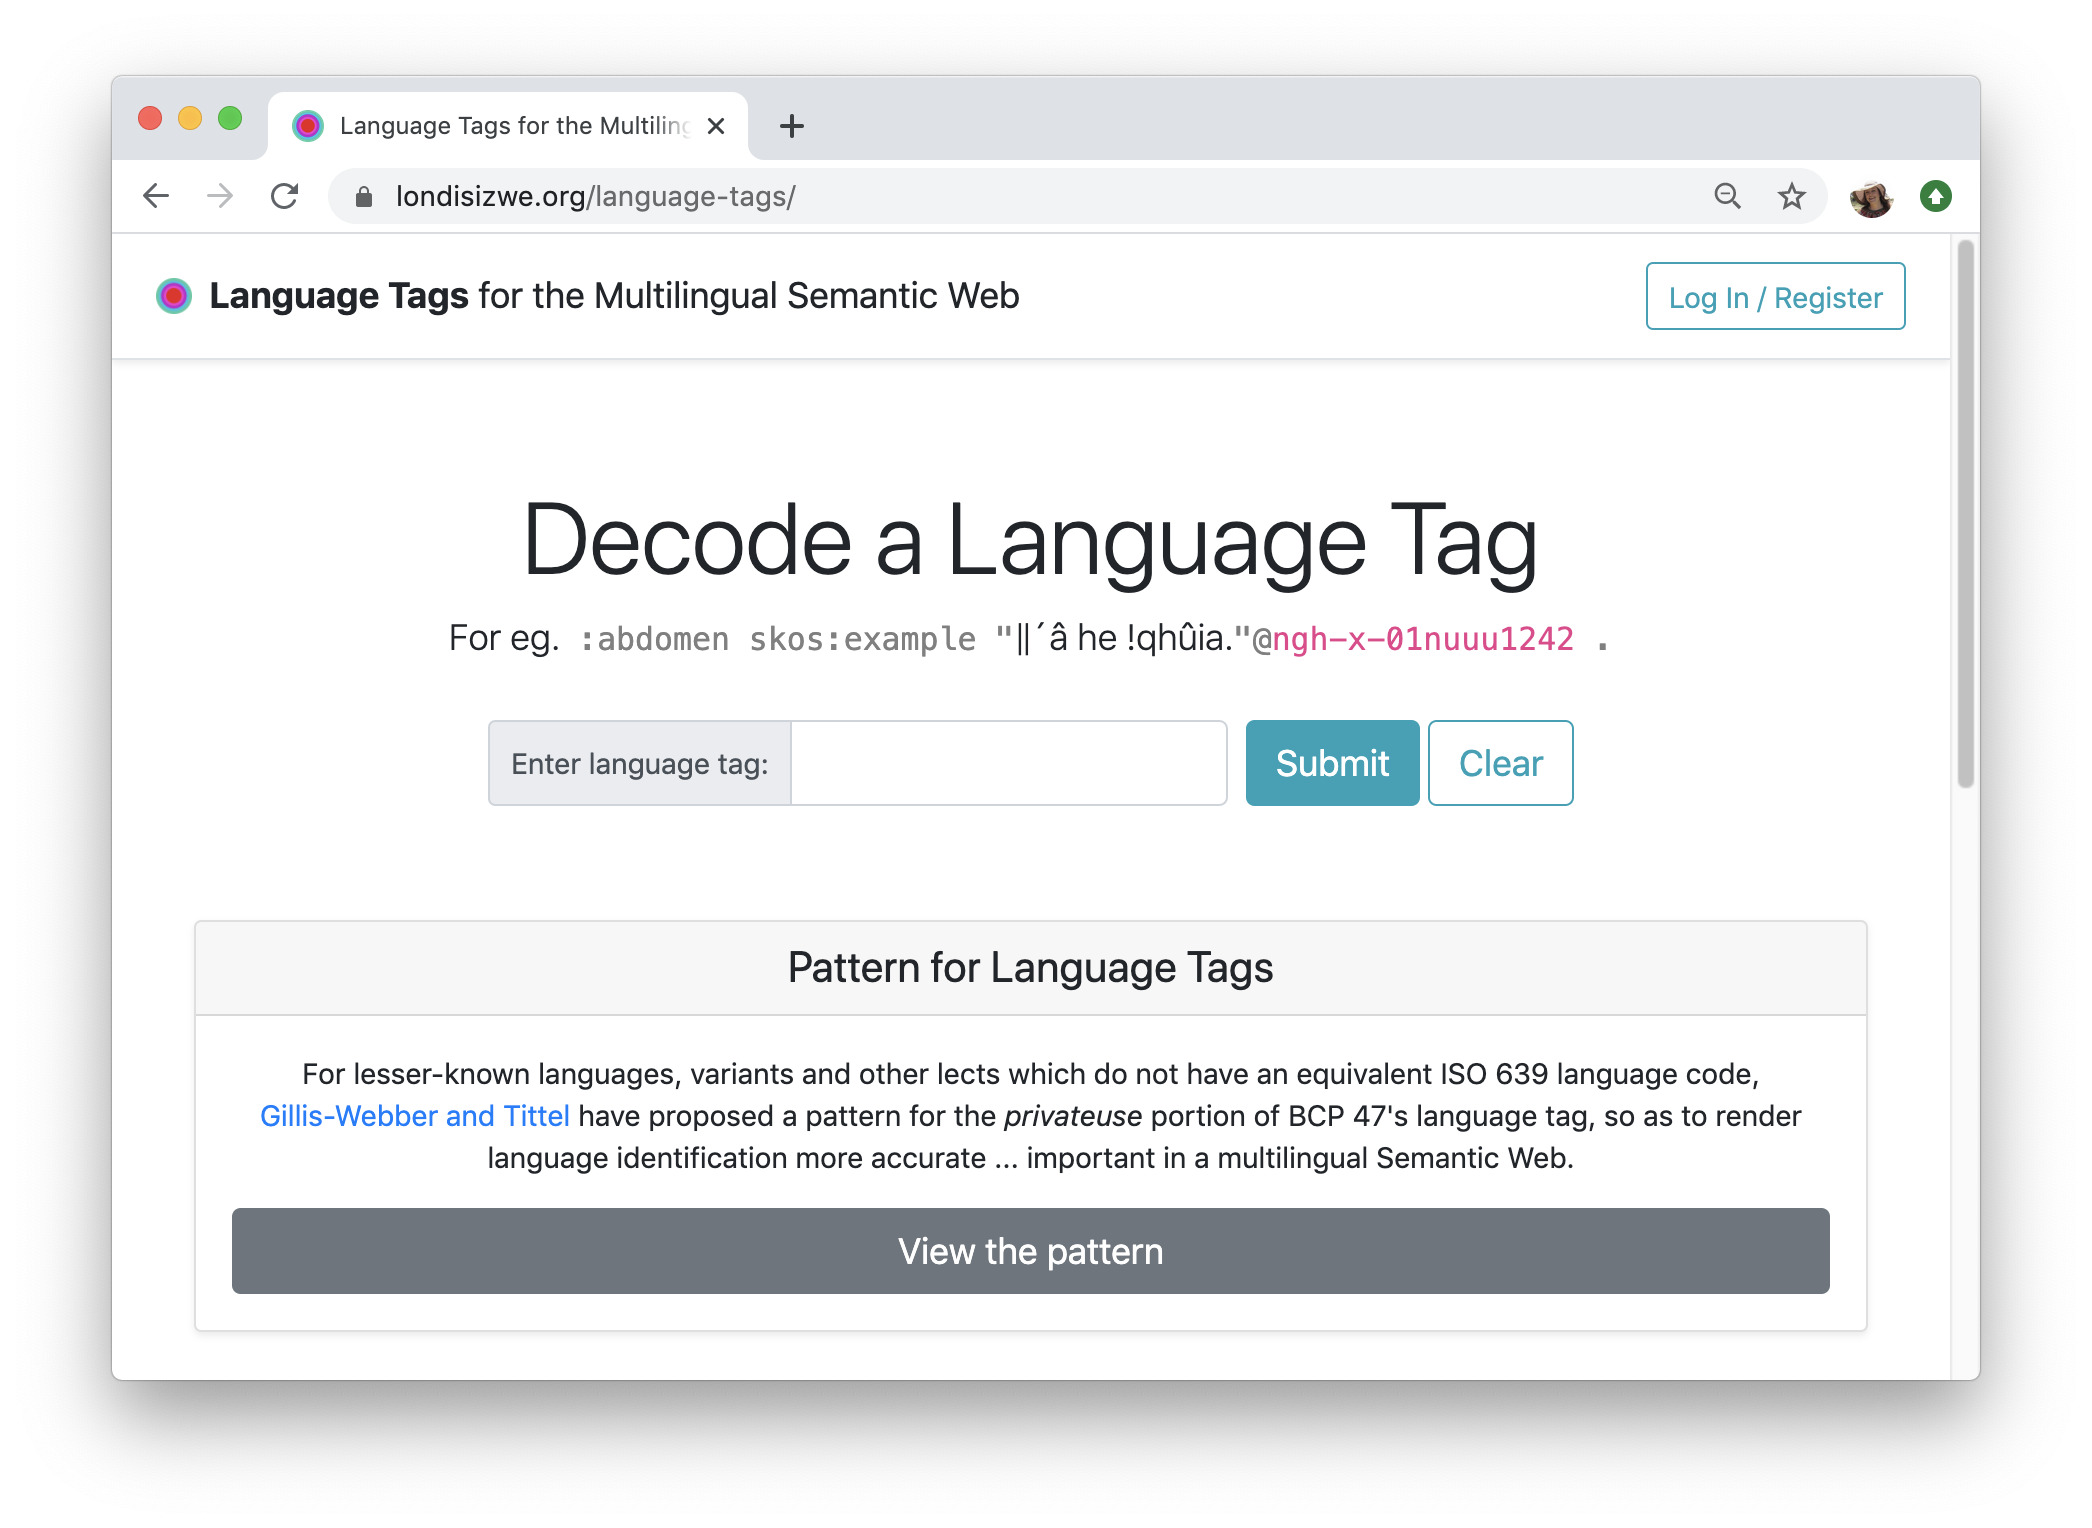 Language Tags for the Multilingual Semantic Web